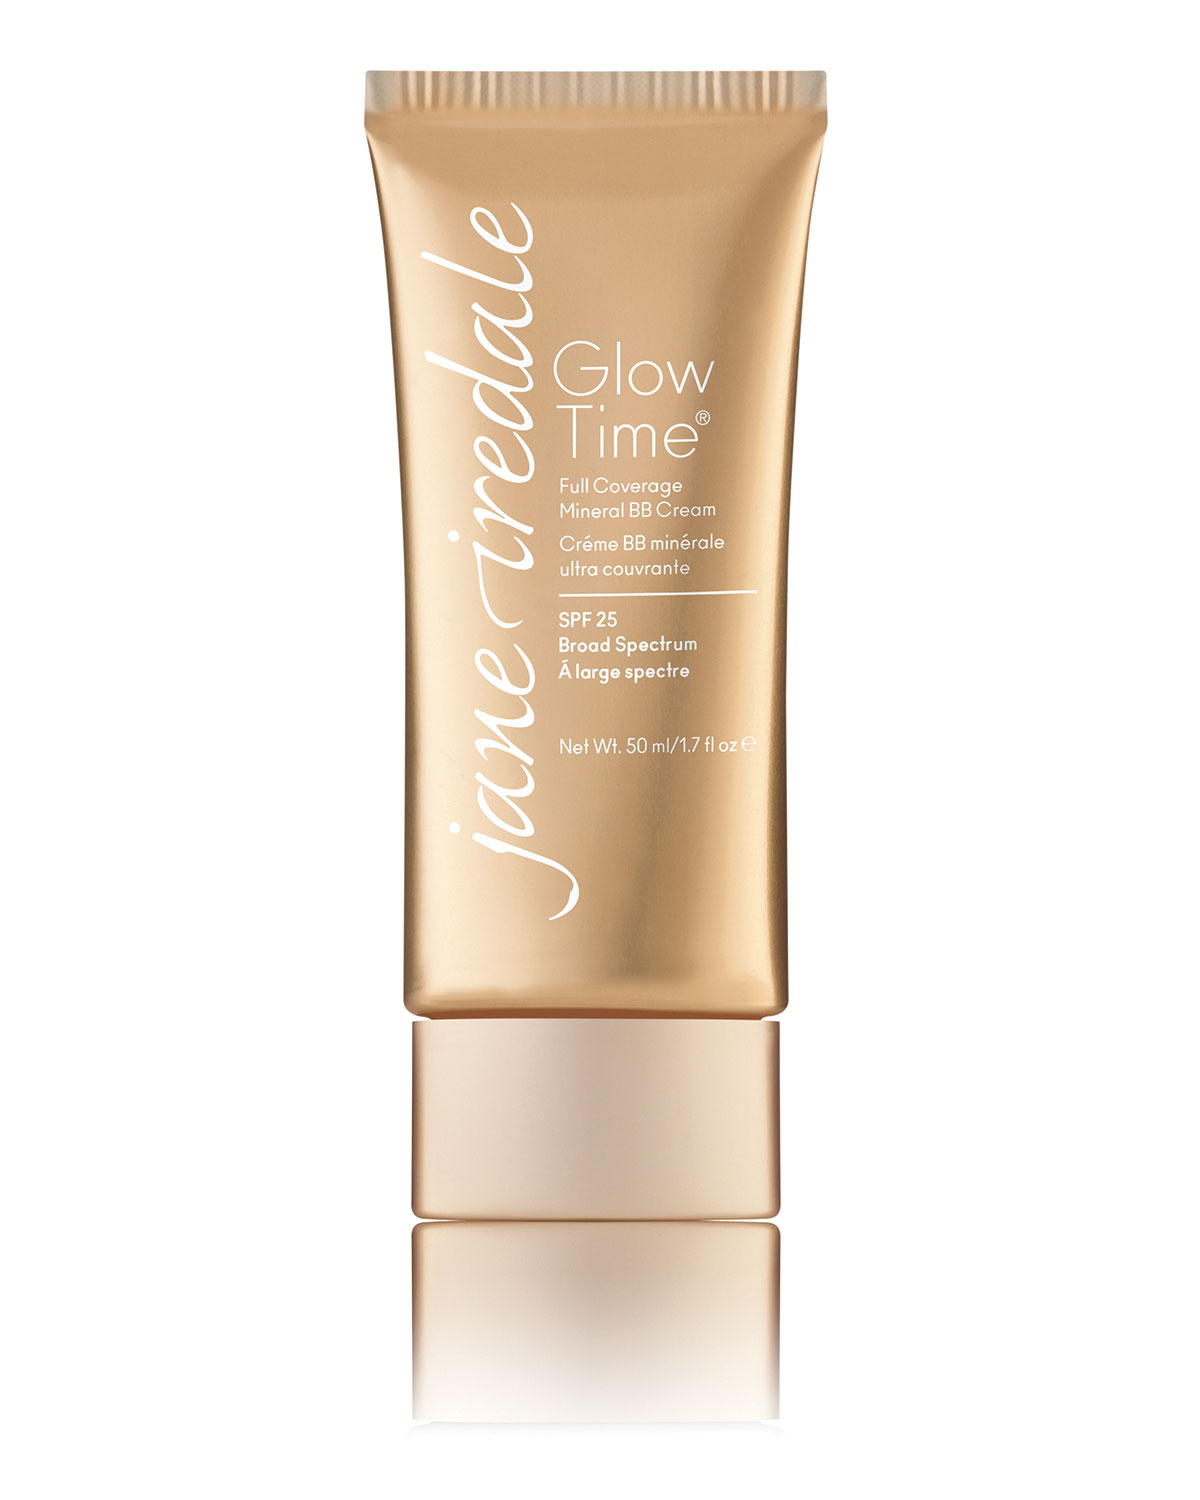 1.7 oz. Glow Time Full Coverage Mineral BB Cream